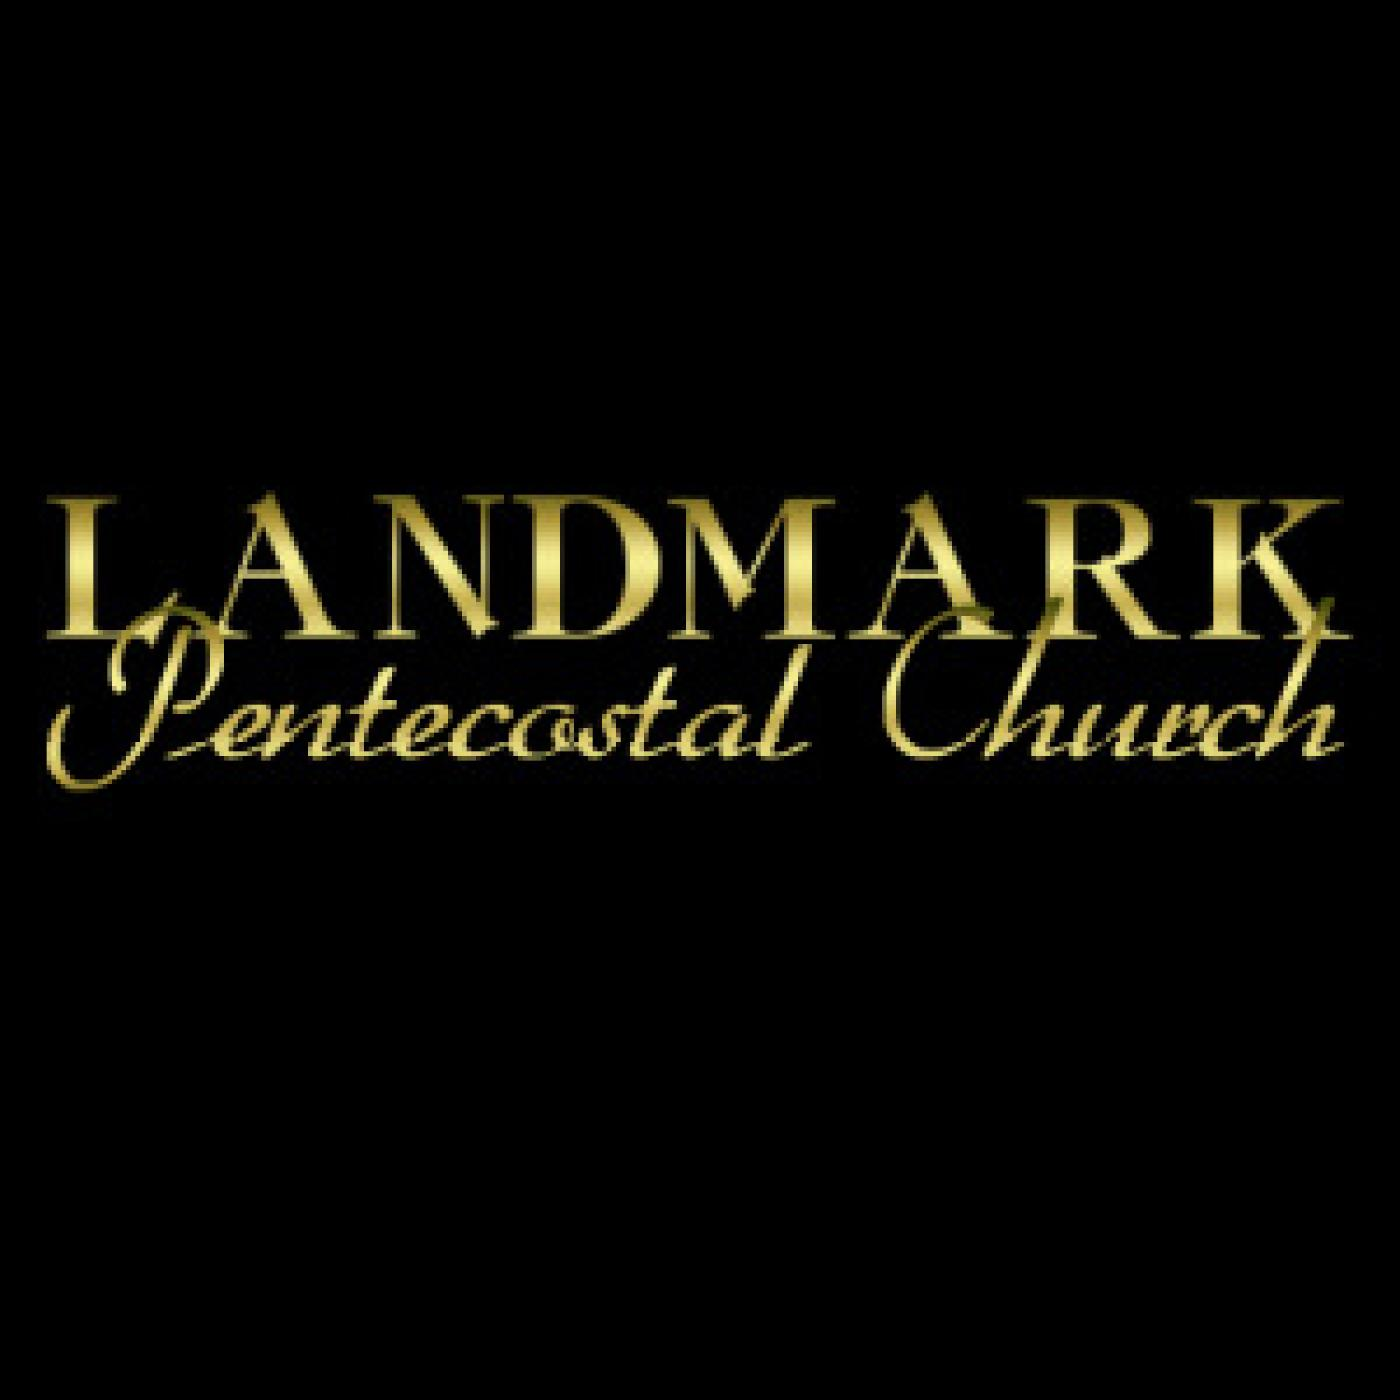 Landmark Pentecostal Church